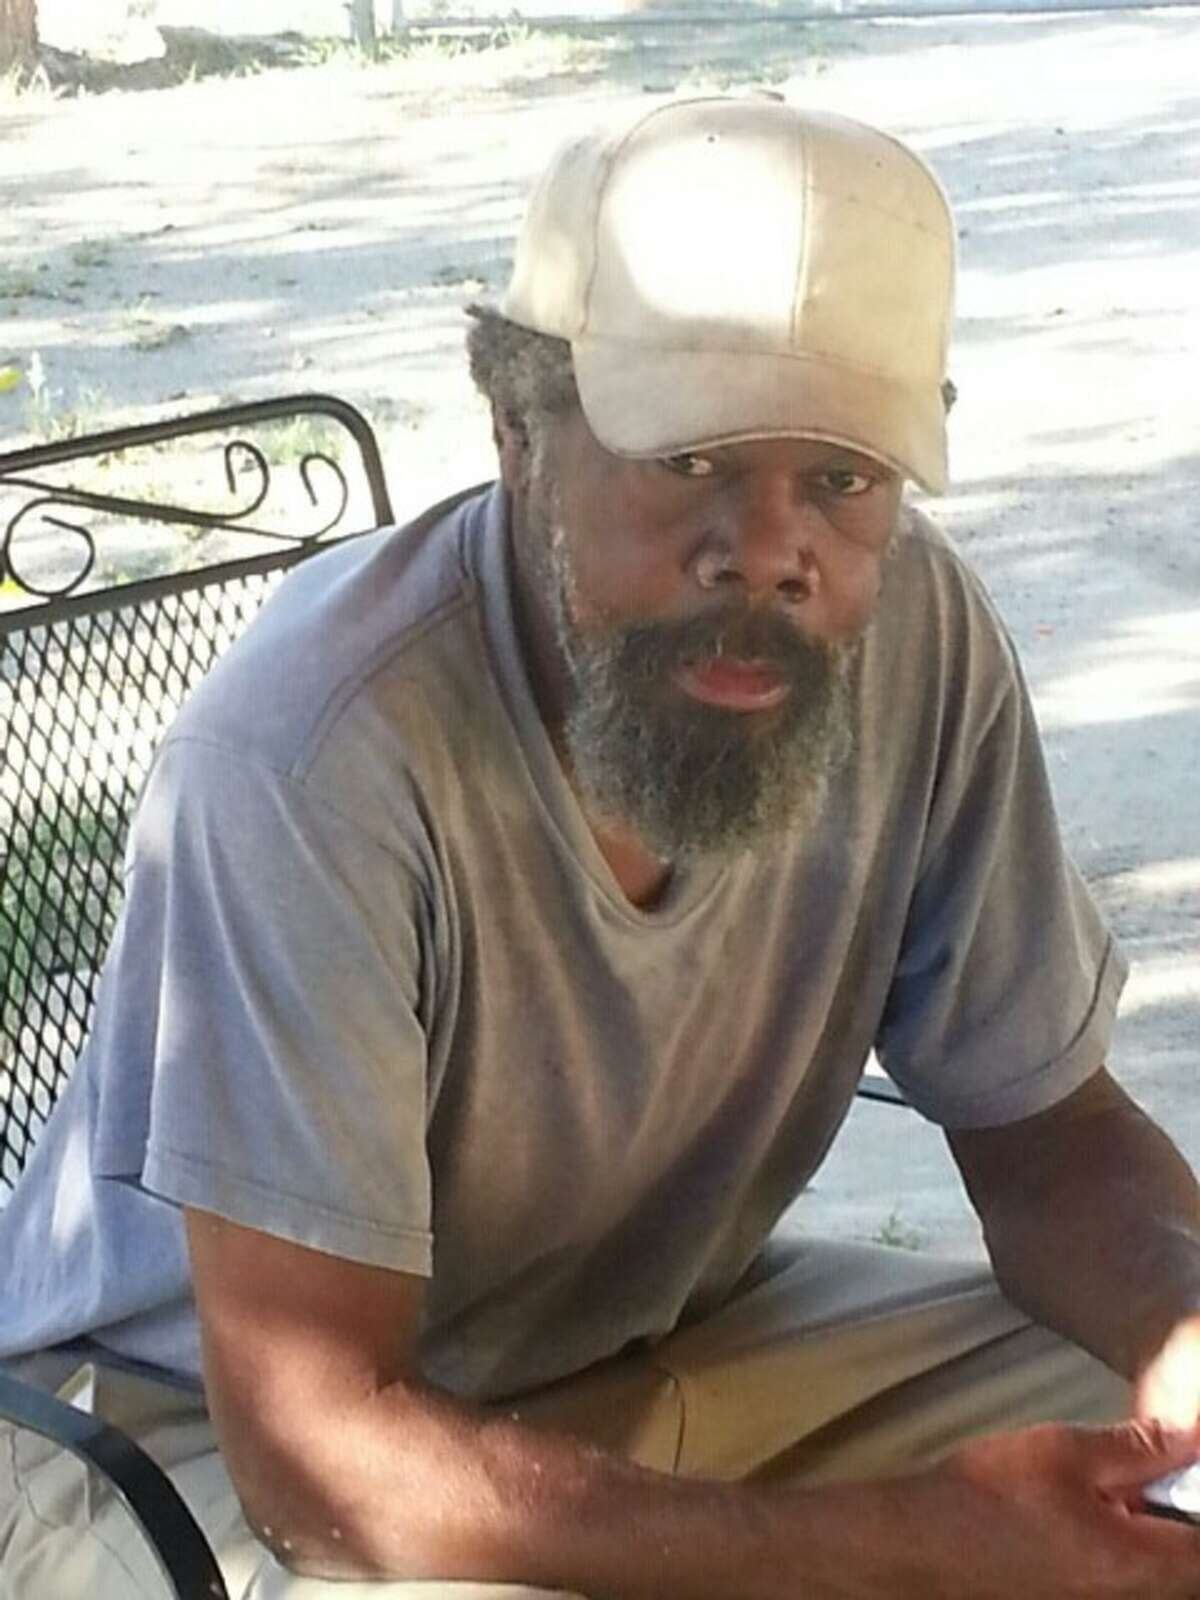 Robert Mosley, 54, who was found unresponsive in his cell at the Bexar County Jail before he was transported to the Metropolitan Methodist Hospital where he was pronounced dead.